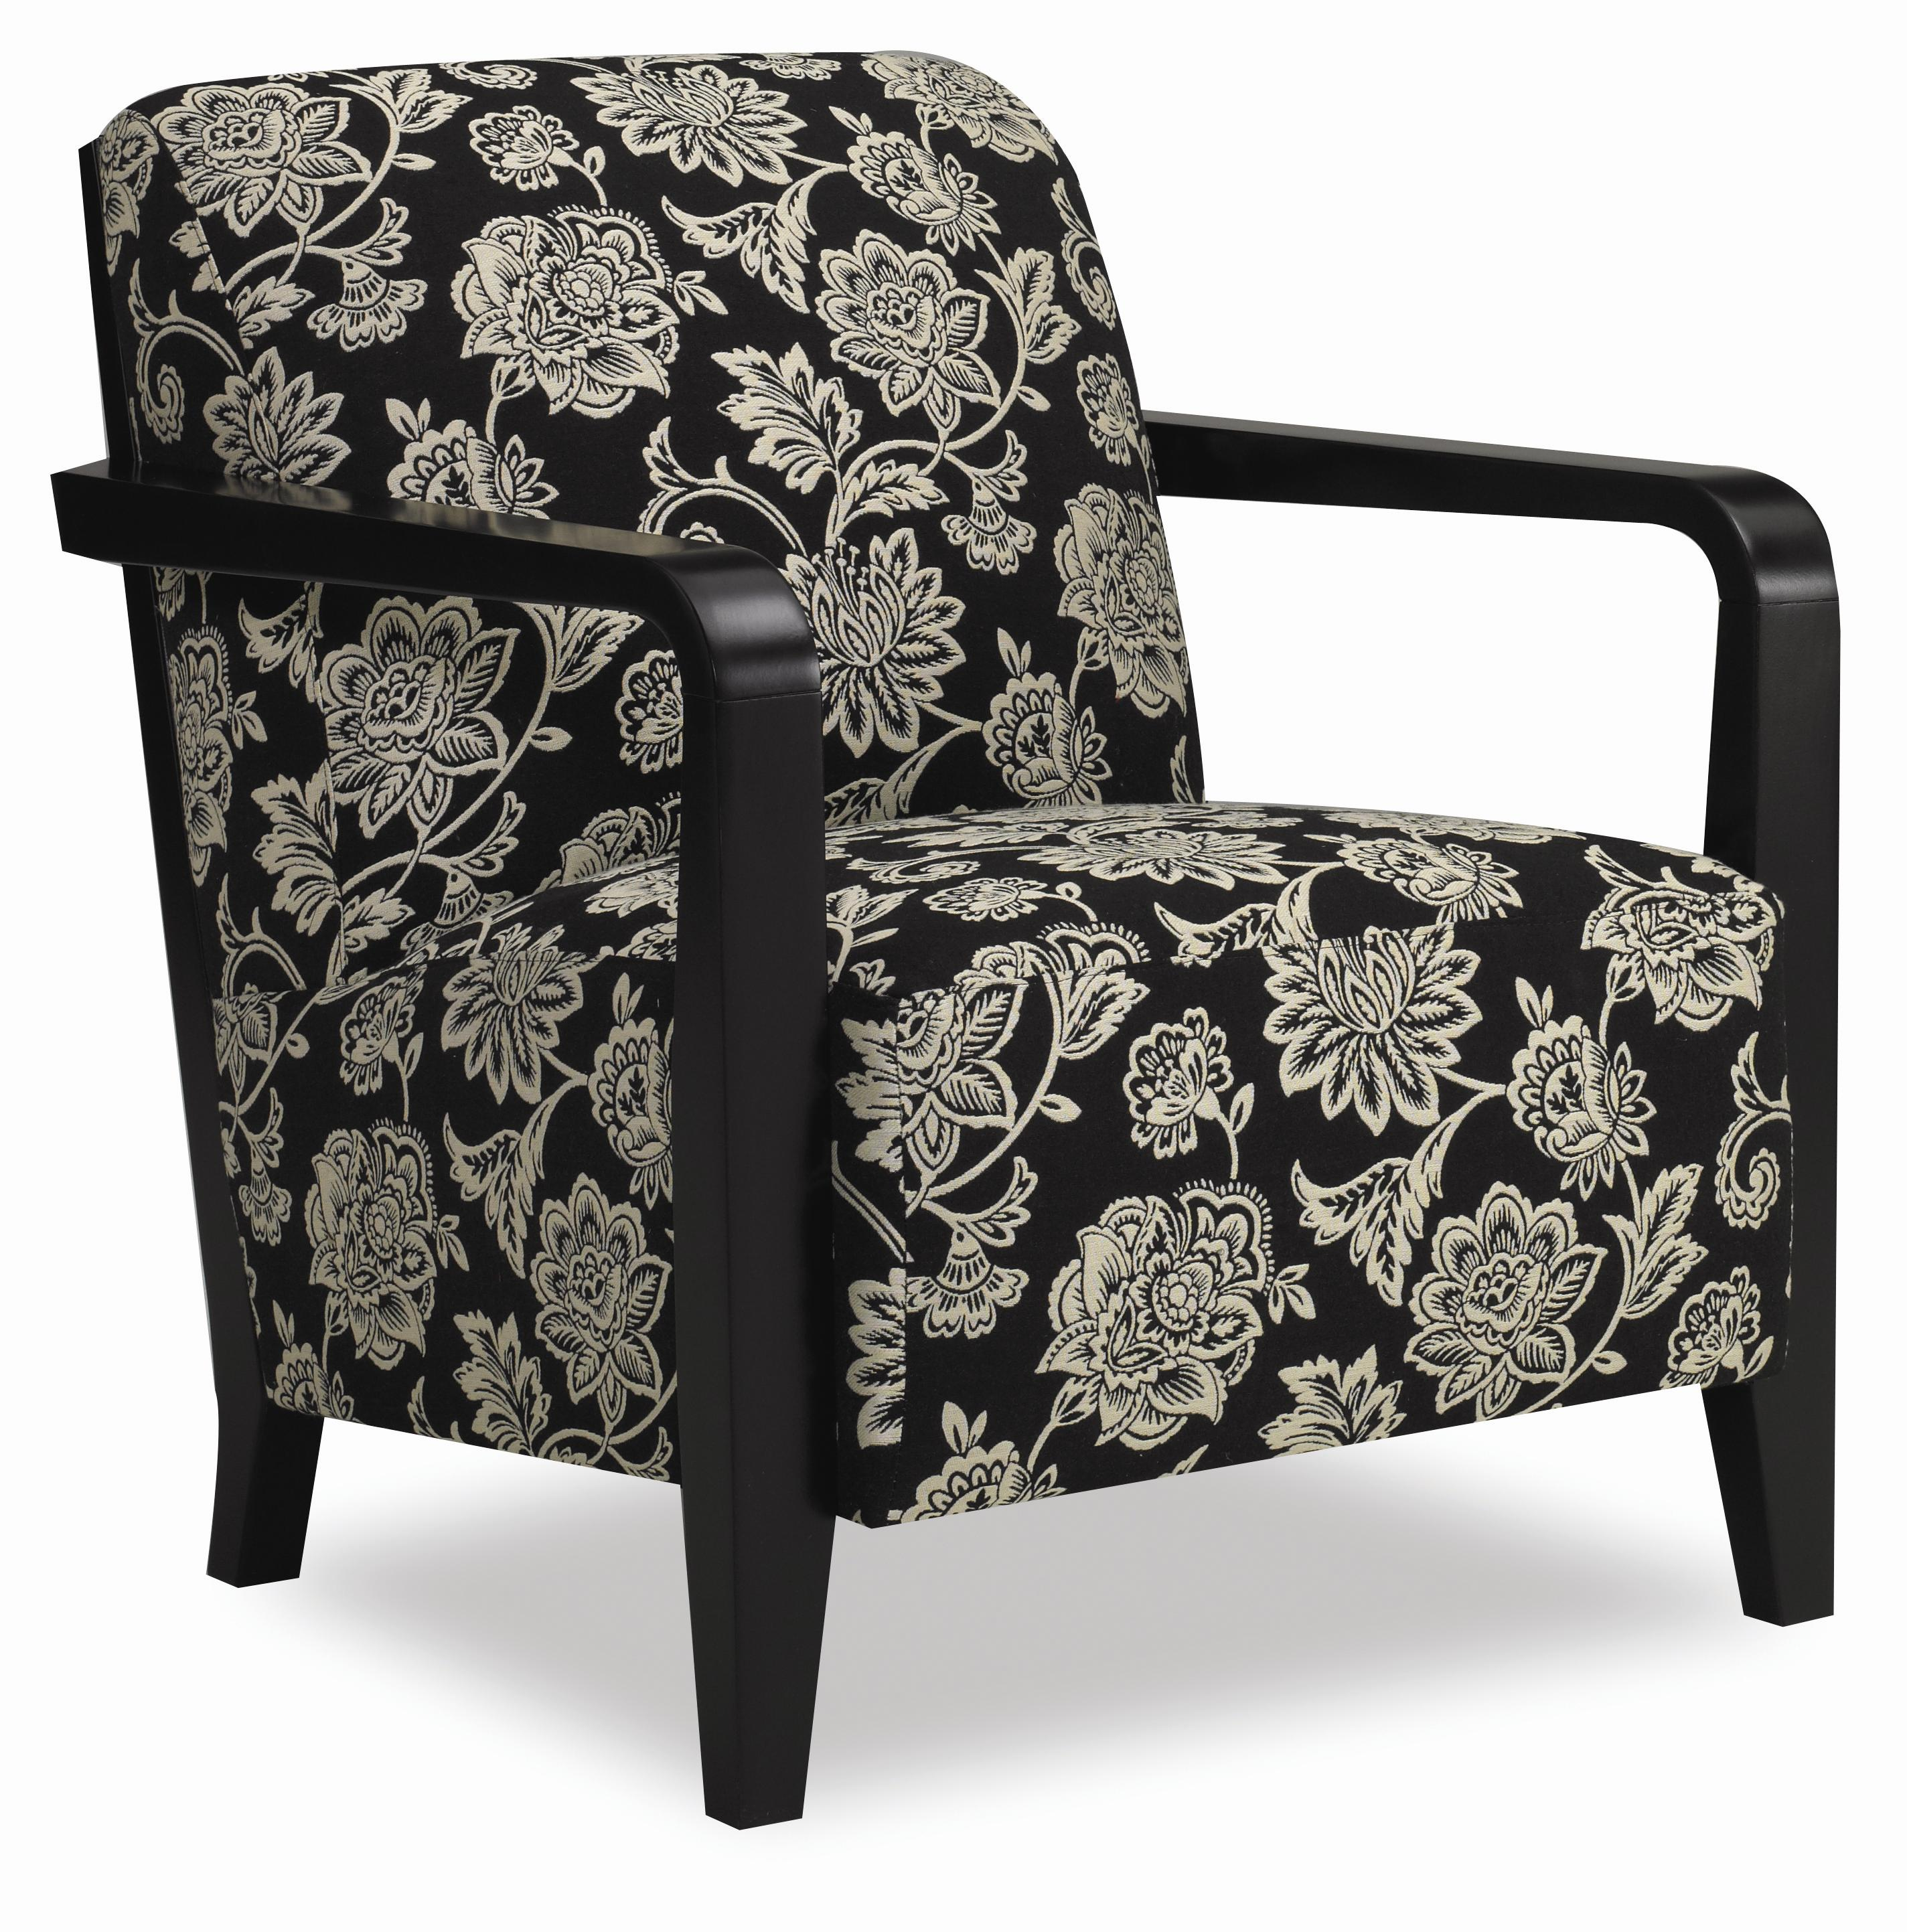 Sam Moore Thomas 4260 Contemporary Exposed Wood Chair   AHFA   Upholstered  Chair Dealer Locator